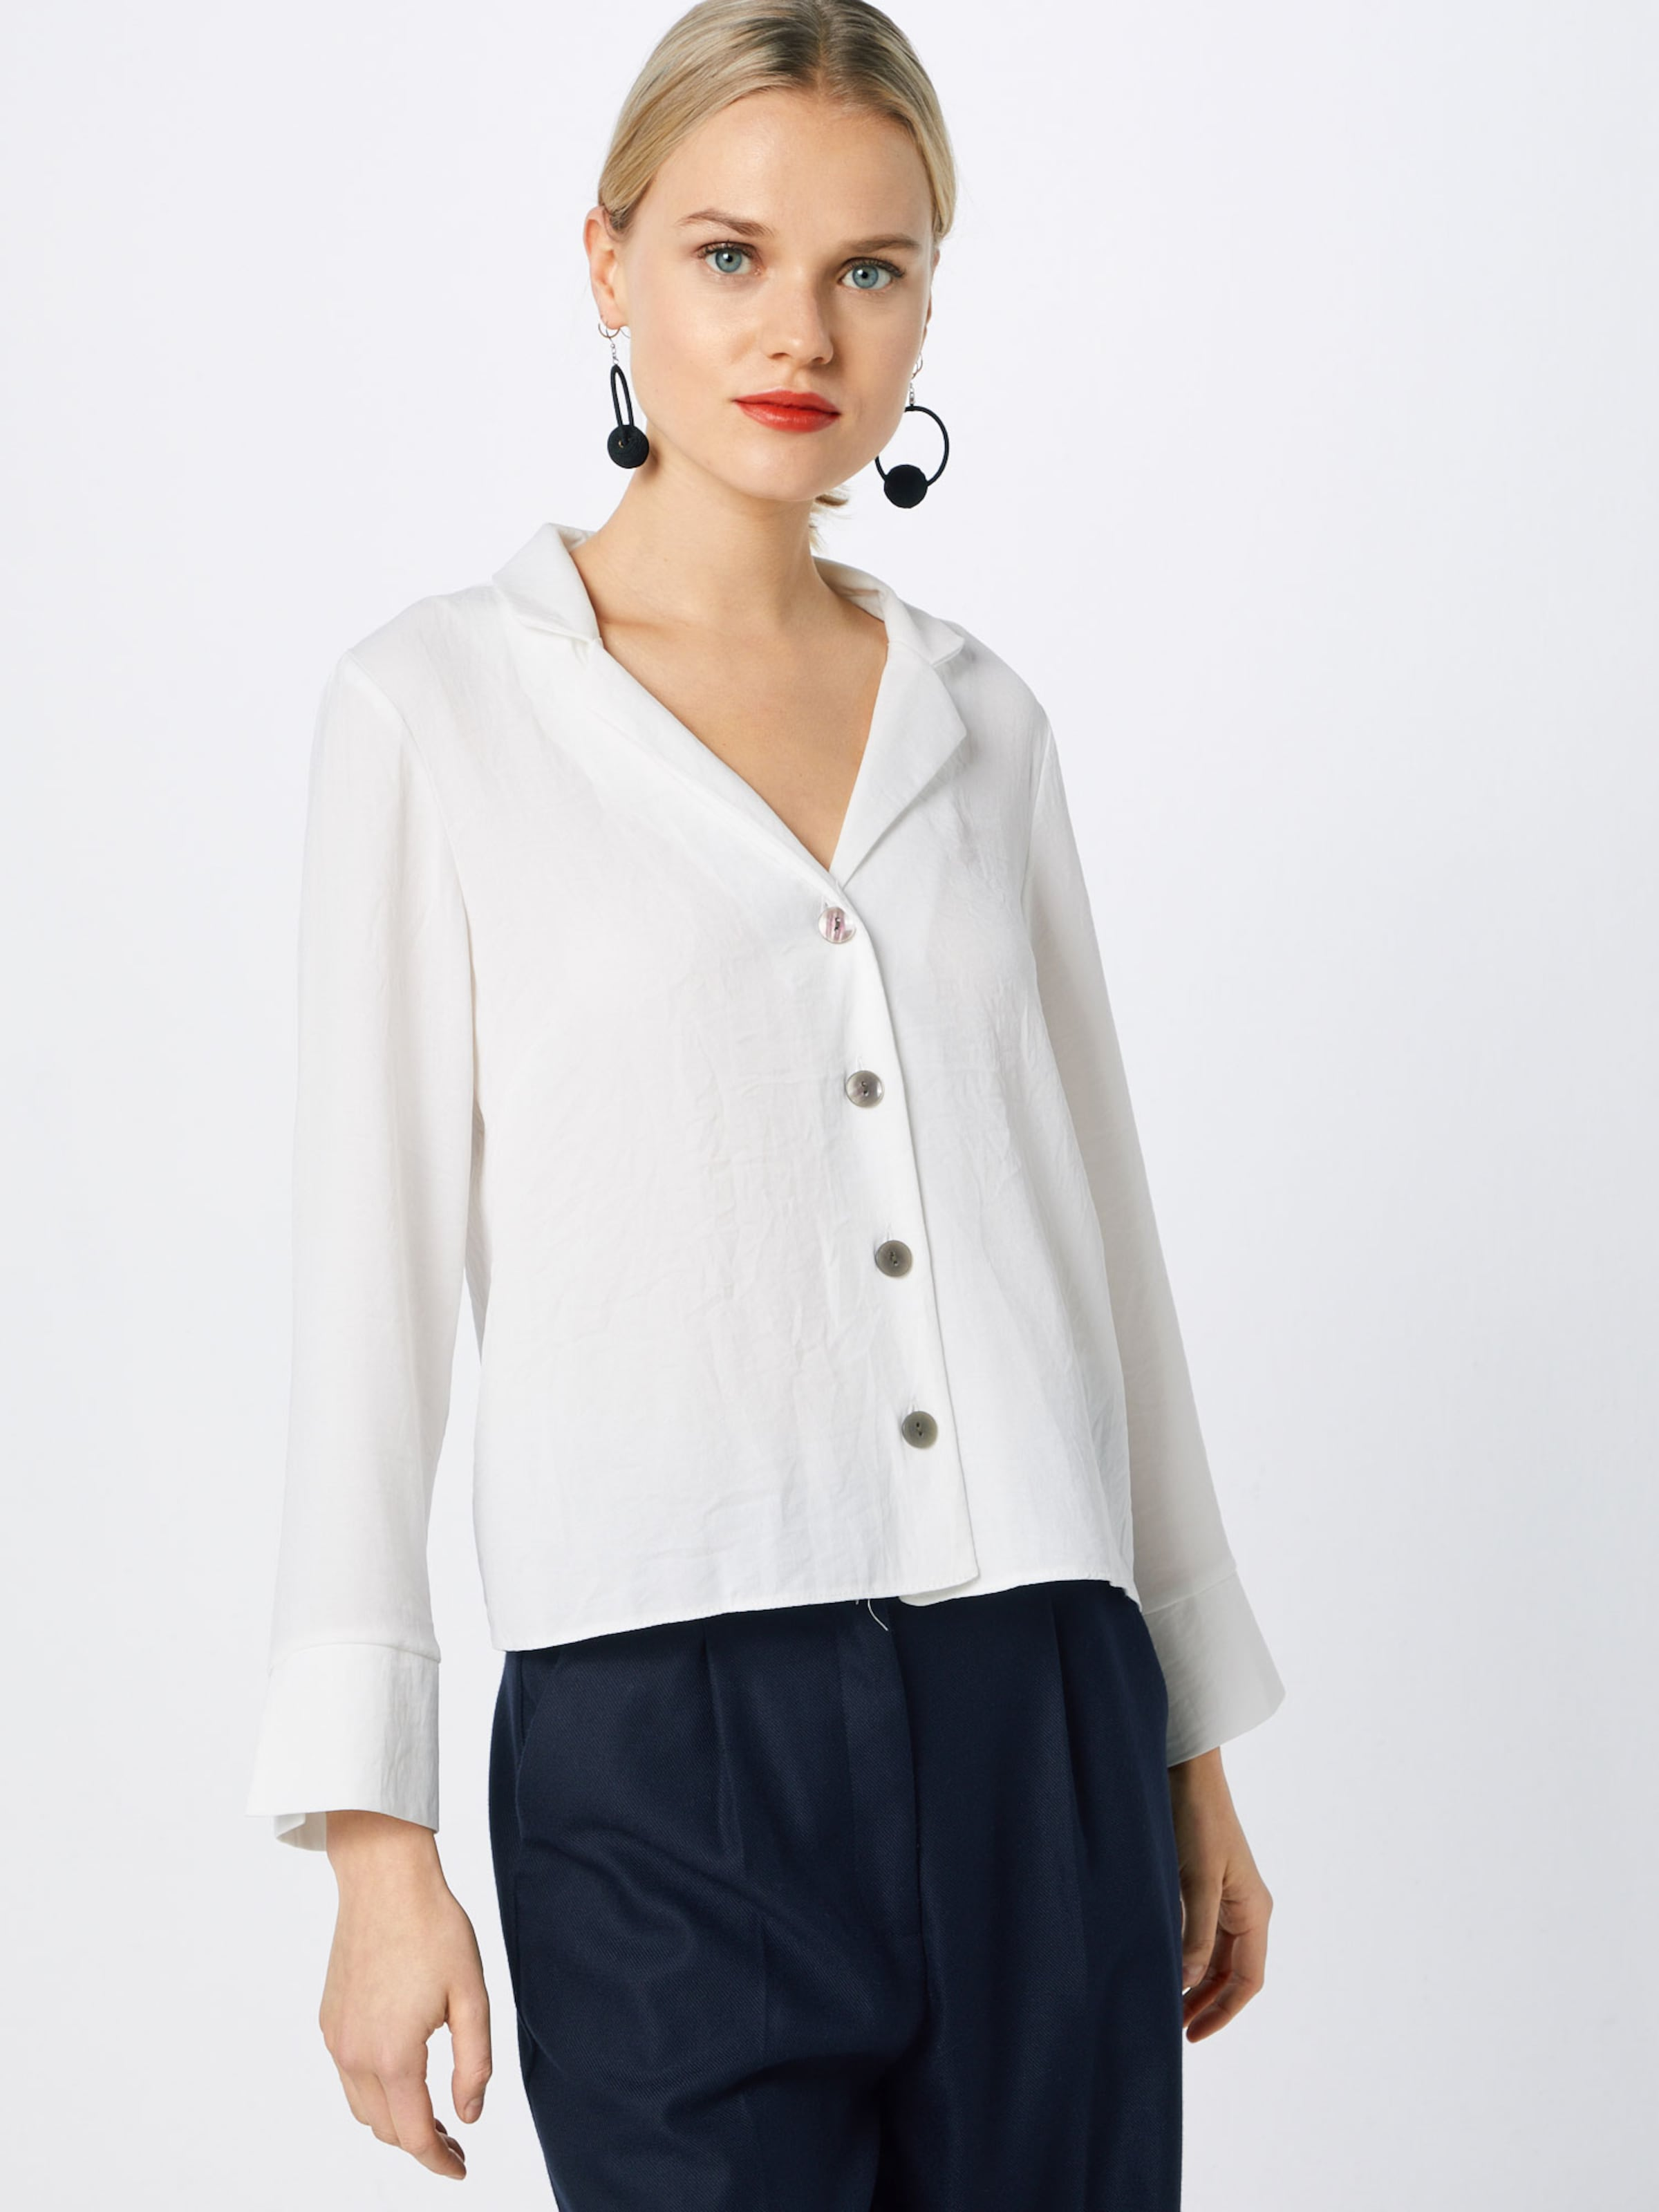 '27 New Peggy 04 Shirt' En Look Blanc Chemisier Ww W29EDHI